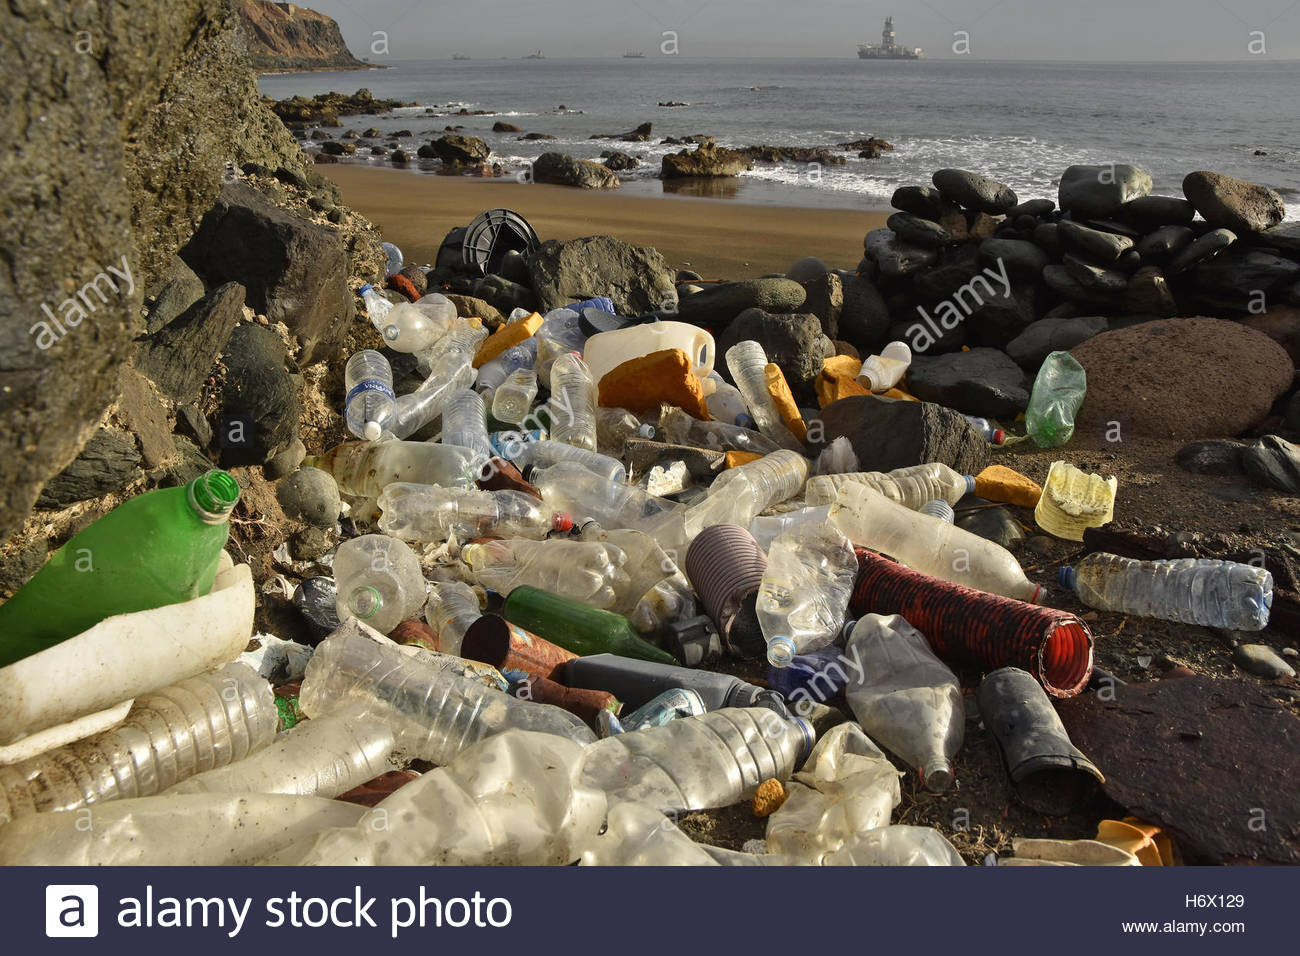 Collected plastic bottles, litter washed up on the shore and oil rig platform in background, Las Palmas Gran Canaria - Stock Image